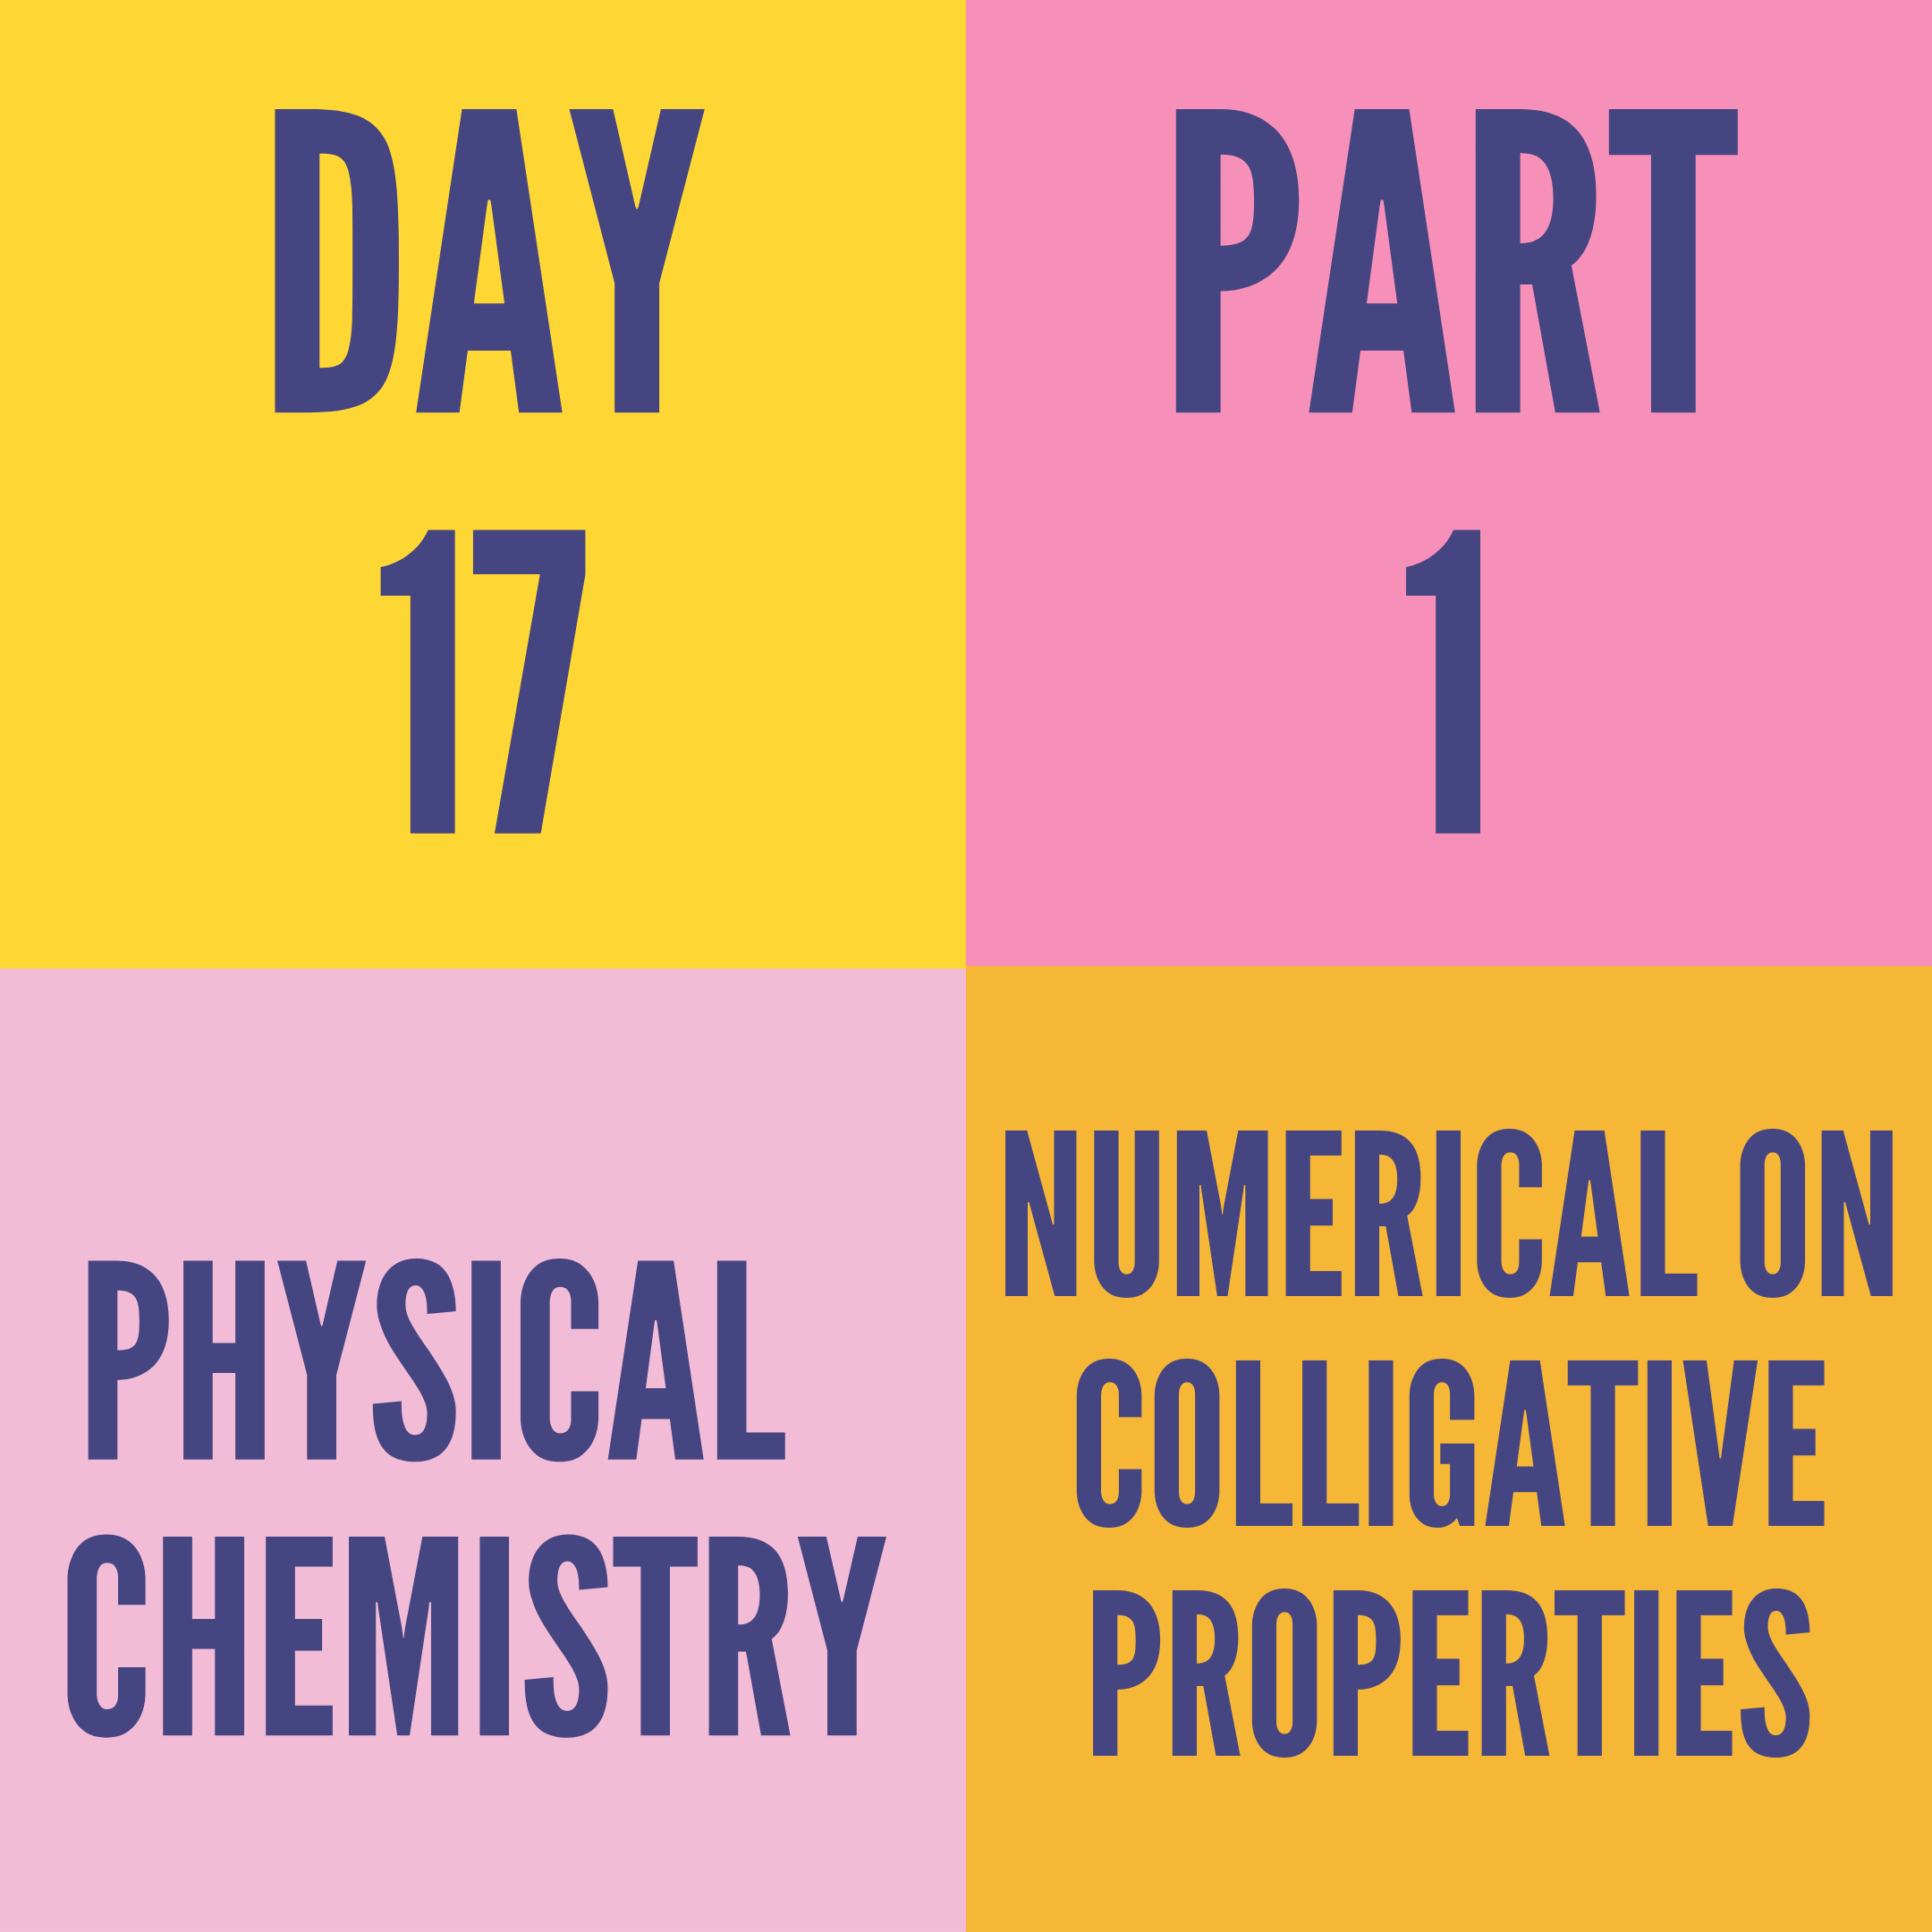 DAY-17 PART-1 NUMERICAL ON COLLIGATIVE PROPERTIES